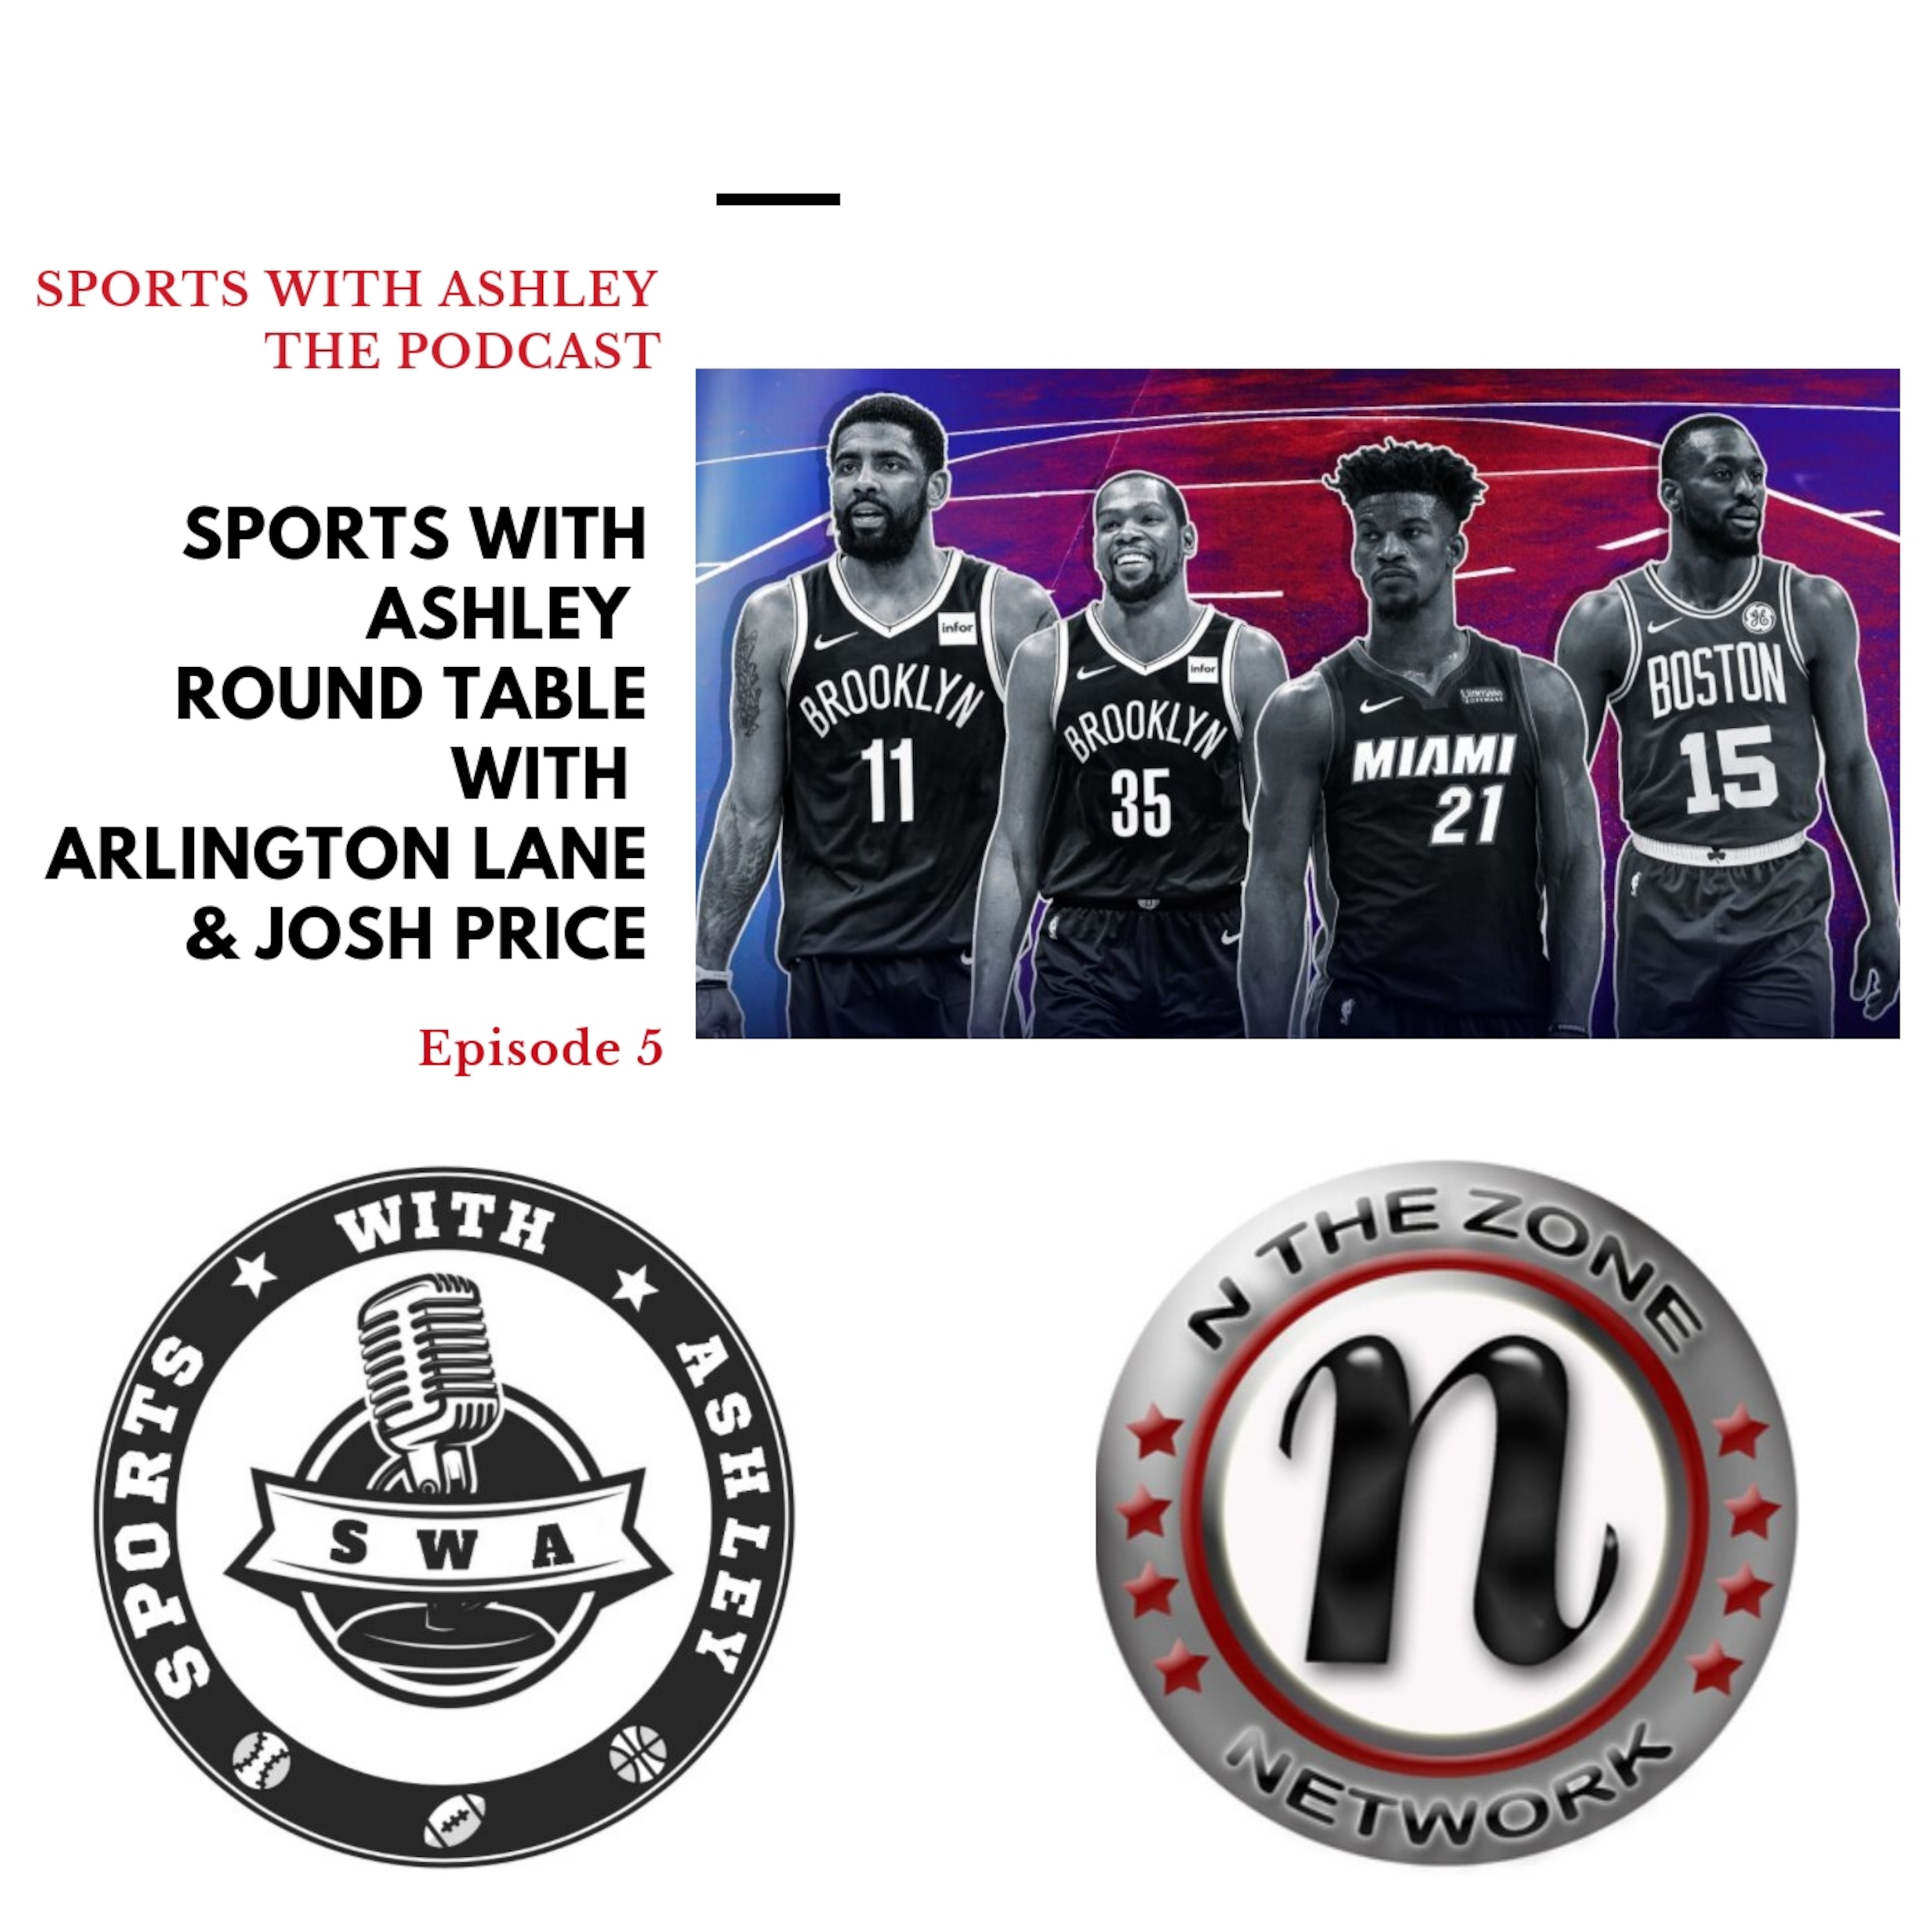 Episode 5 (N The Zone Special) - NBA Free Agency